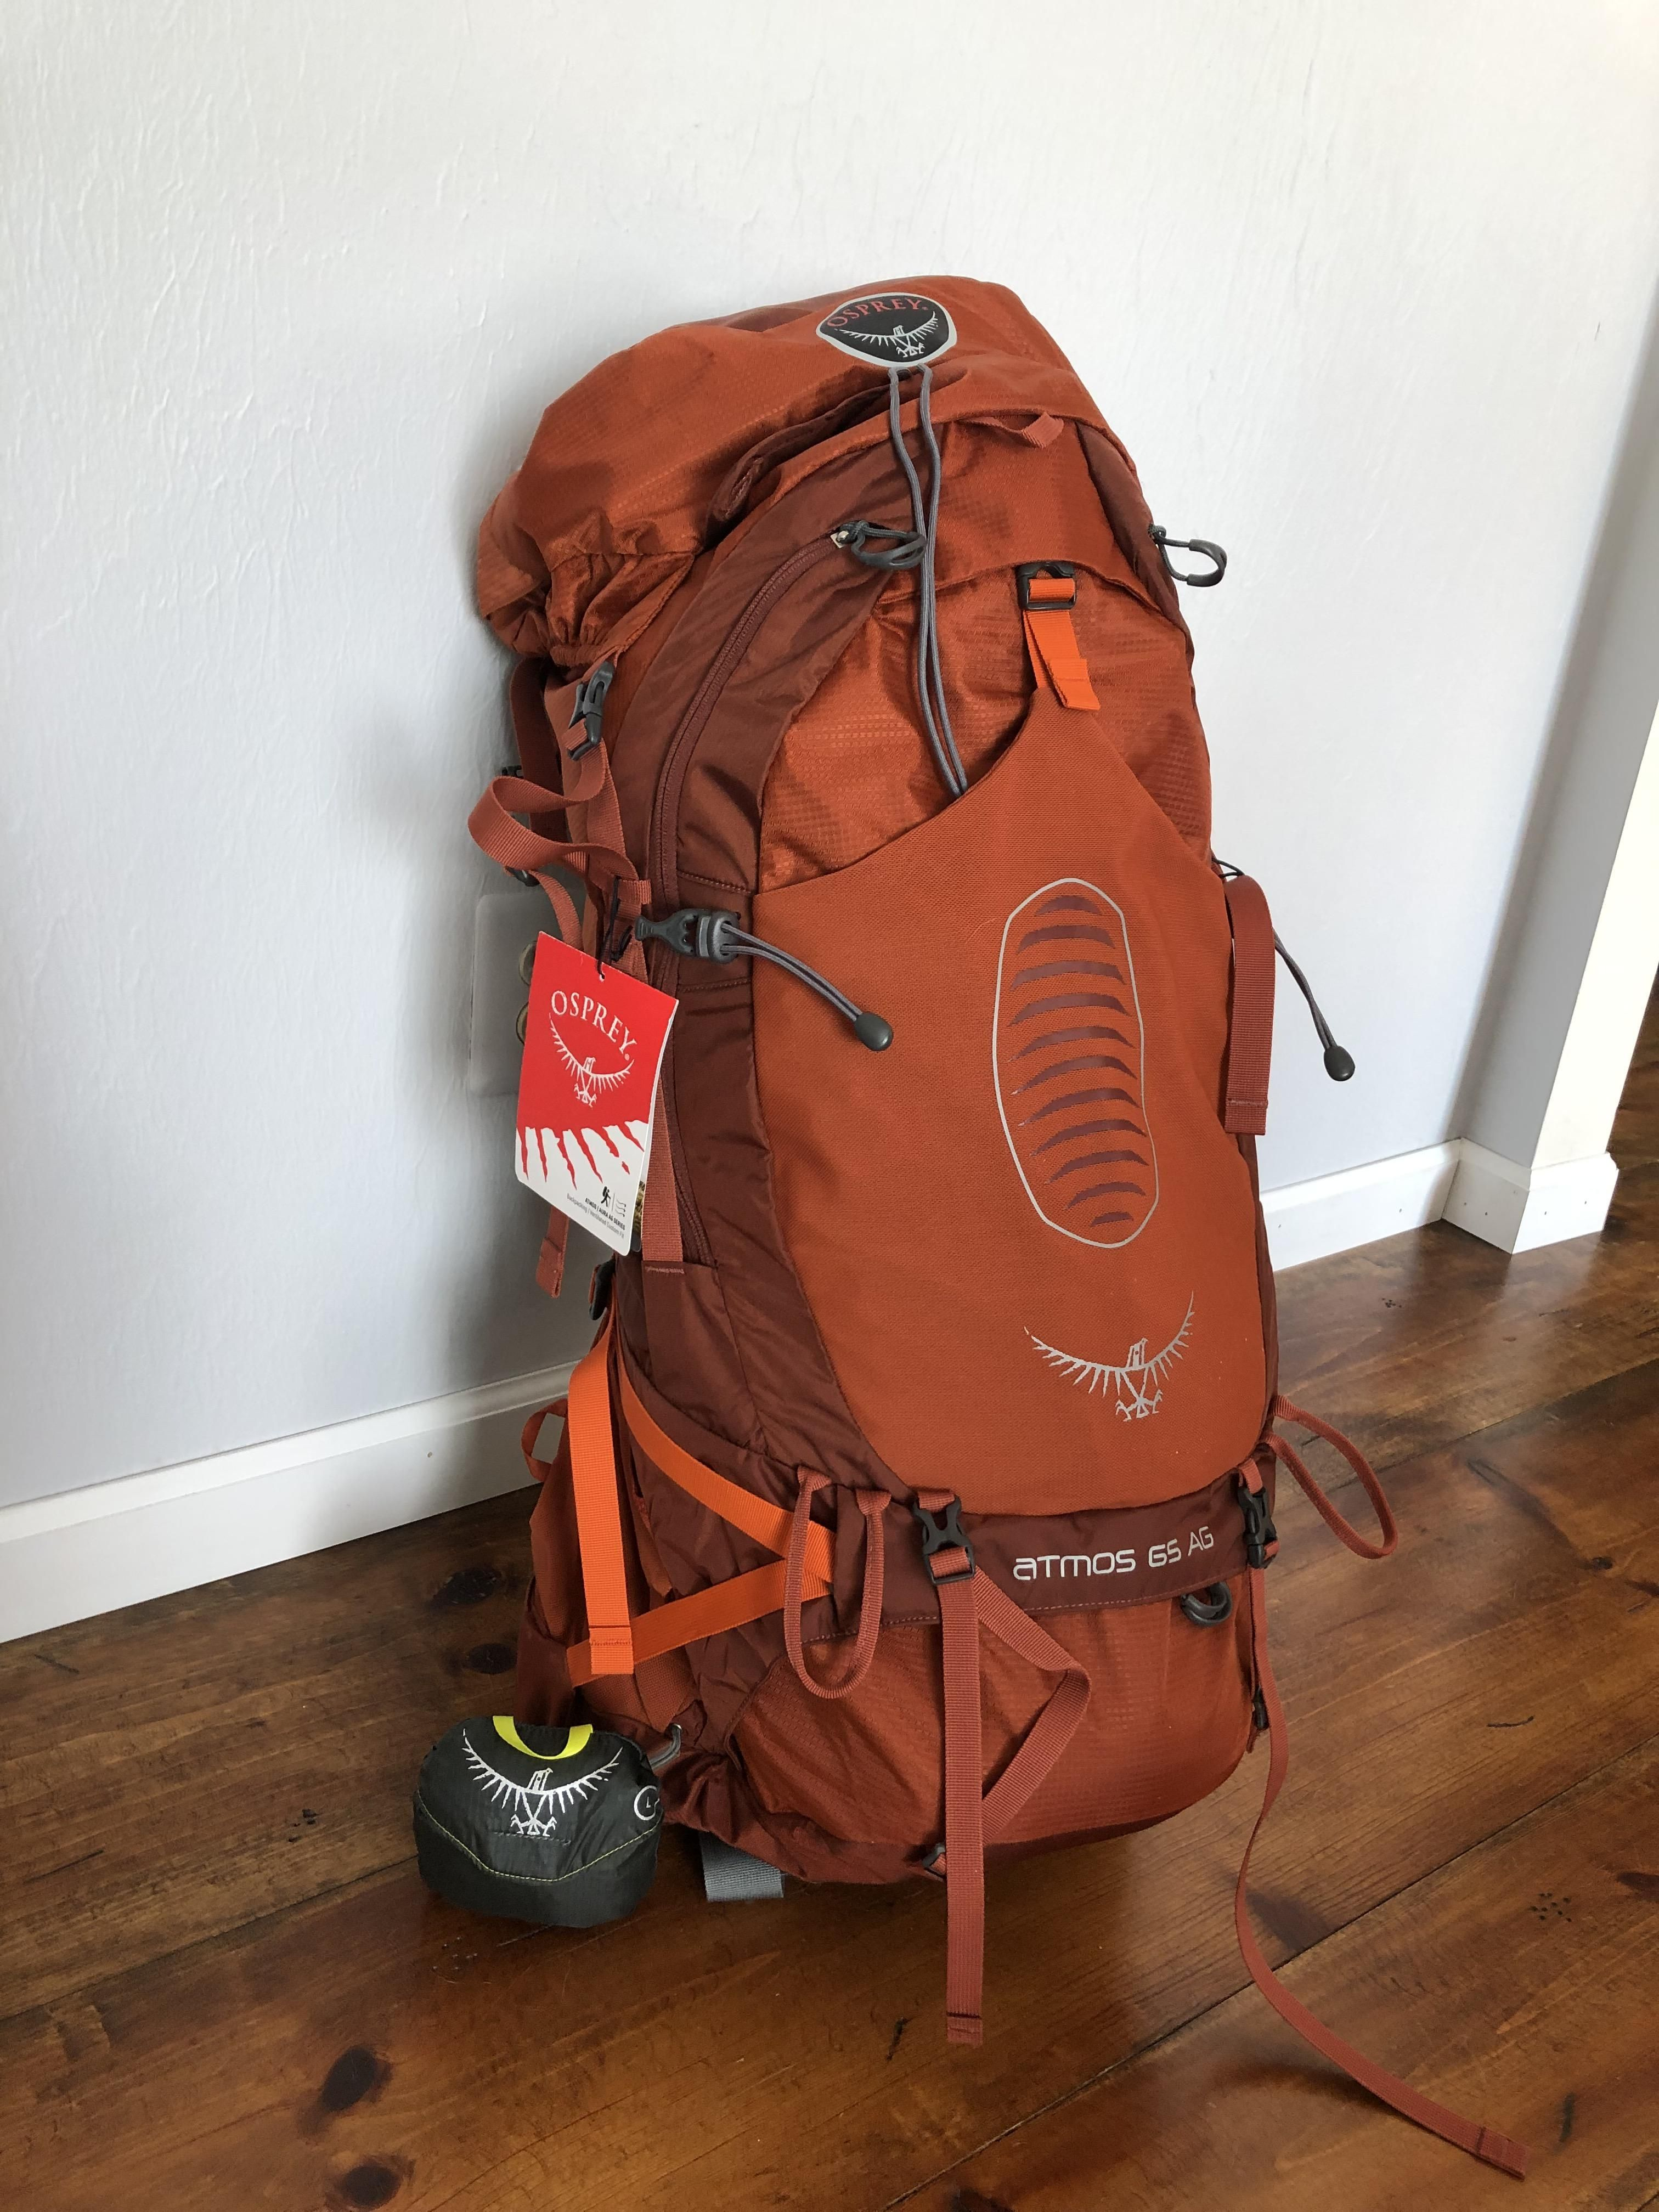 Scored My First Real Backpack With Rain Cover For 251 00 Delivered To My Door Osprey Atmos Ag 65 Hiking Camping Outdoors Osprey Atmos Rain Cover Osprey